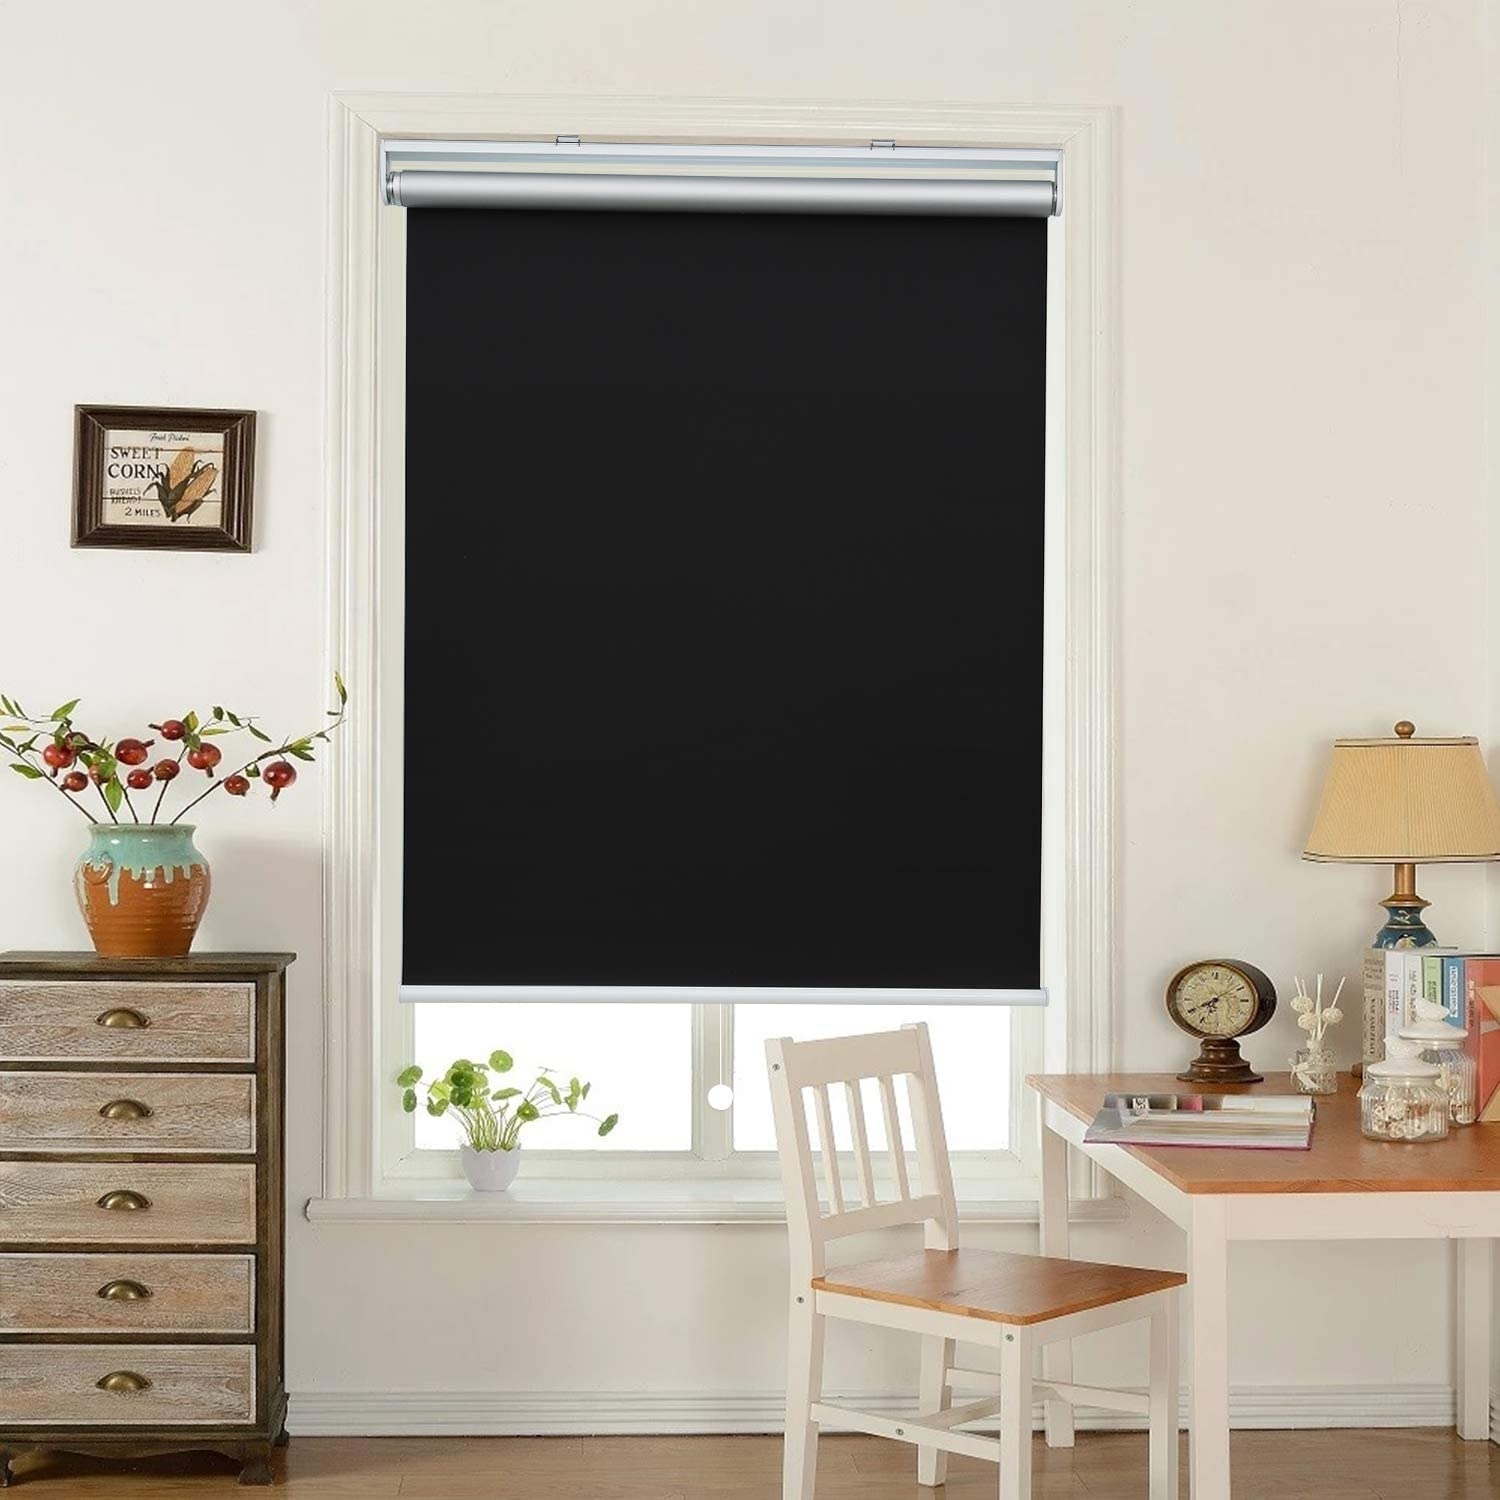 """HOMEDEMO Window Blinds and Shades Blackout Roller Shades Cordless and Room Darkening Blinds Black 23"""" W x 72"""" H for Windows, Bedroom, Home"""